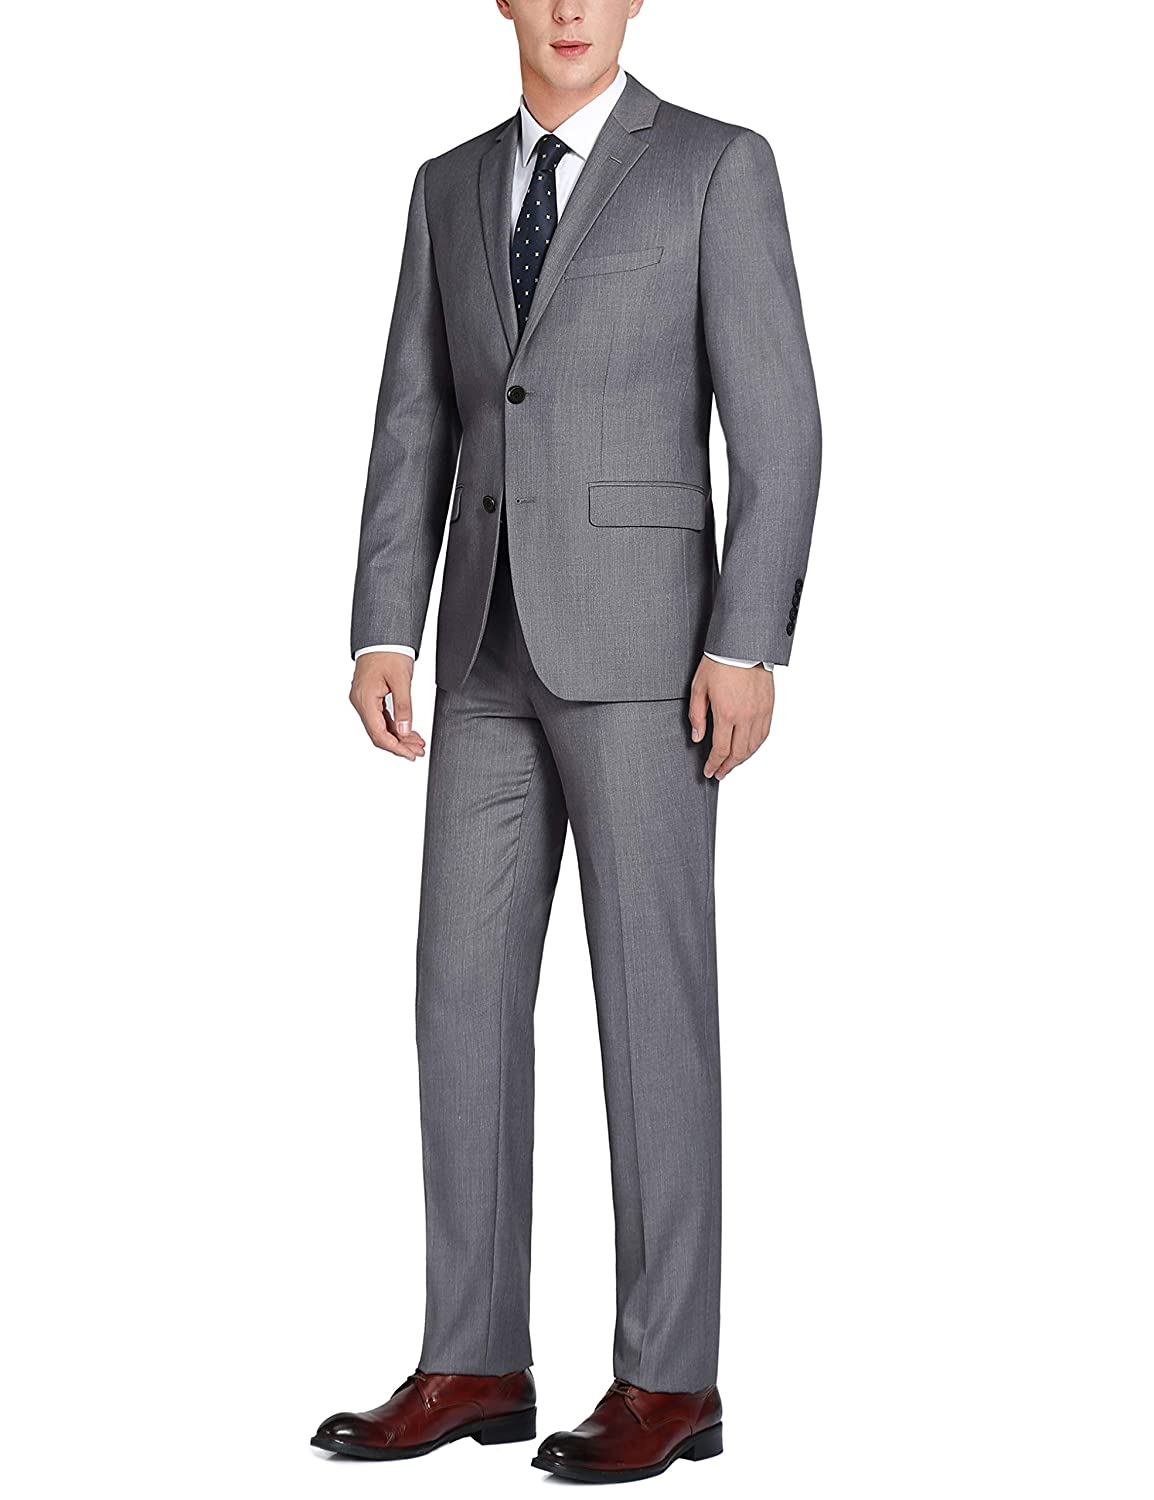 CHAMA Mens 100/% Wool Single Breasted Two Button Notch Lapel Classic Fit Suit